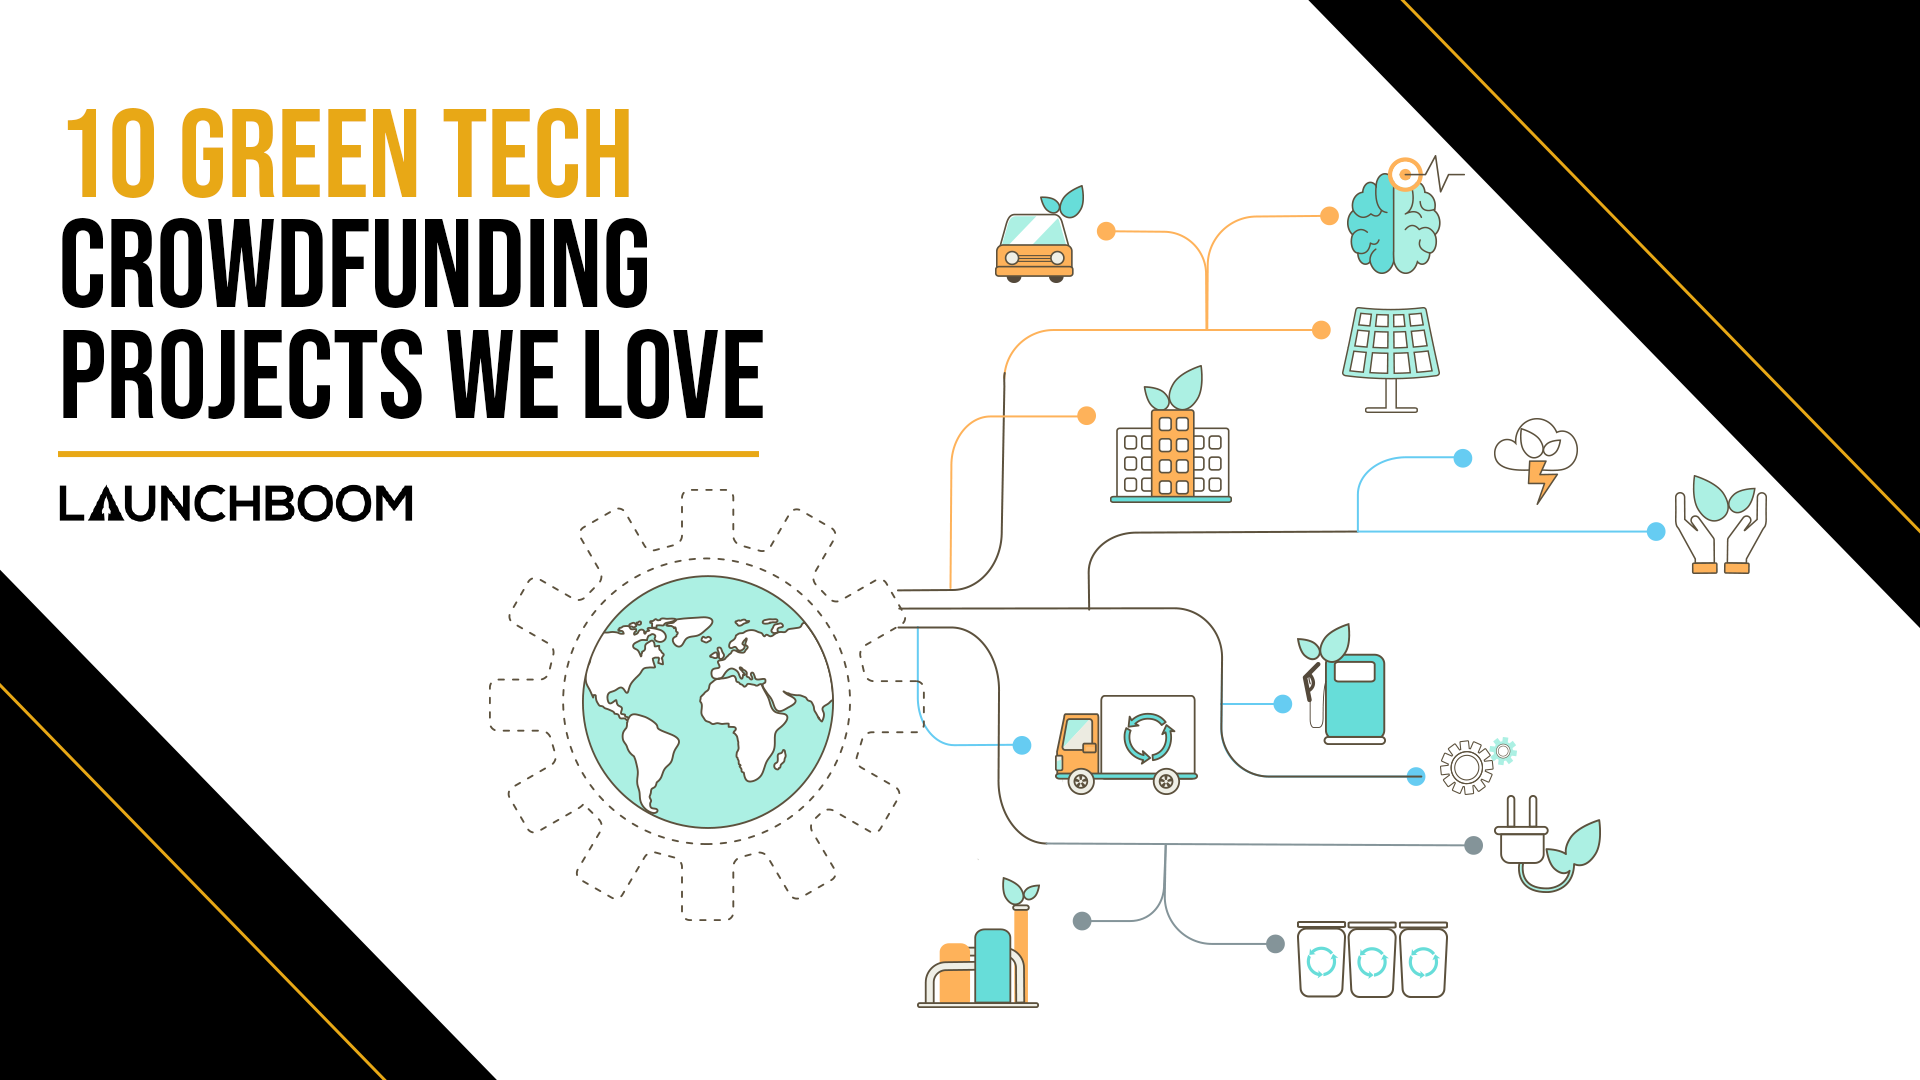 10 green tech crowdfunding projects we love